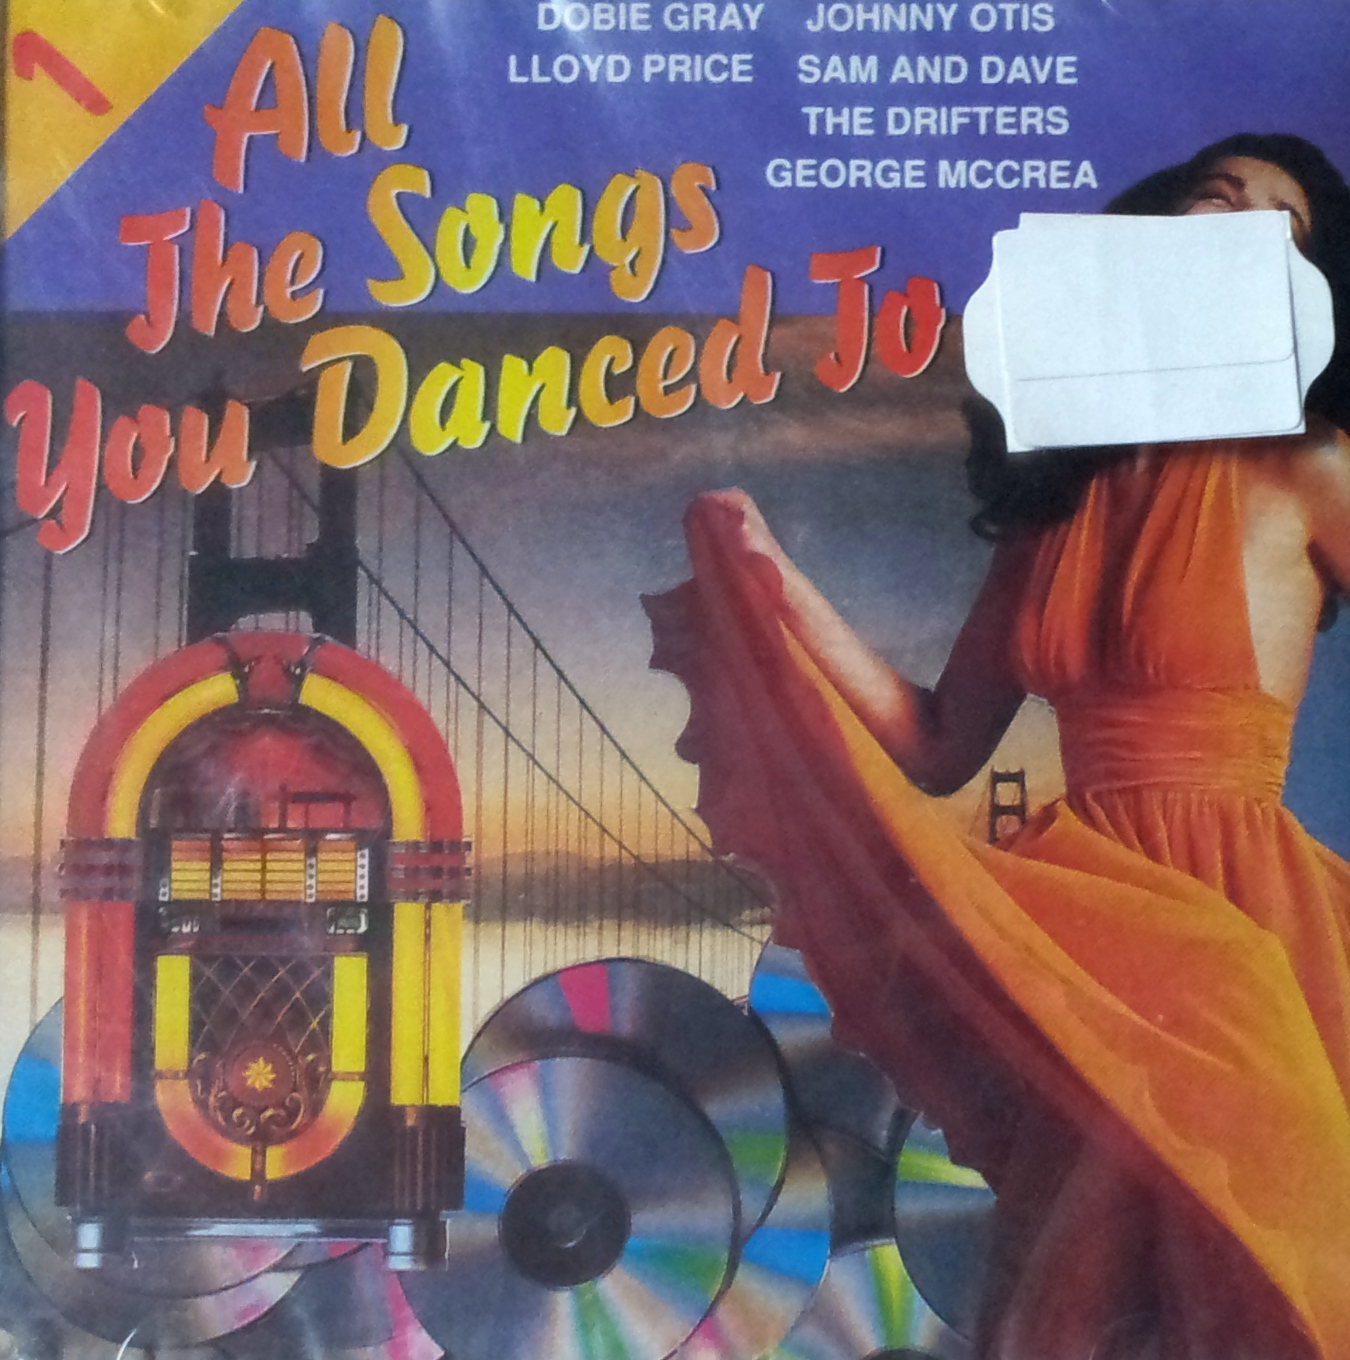 All the songs you danced to Vol. 1